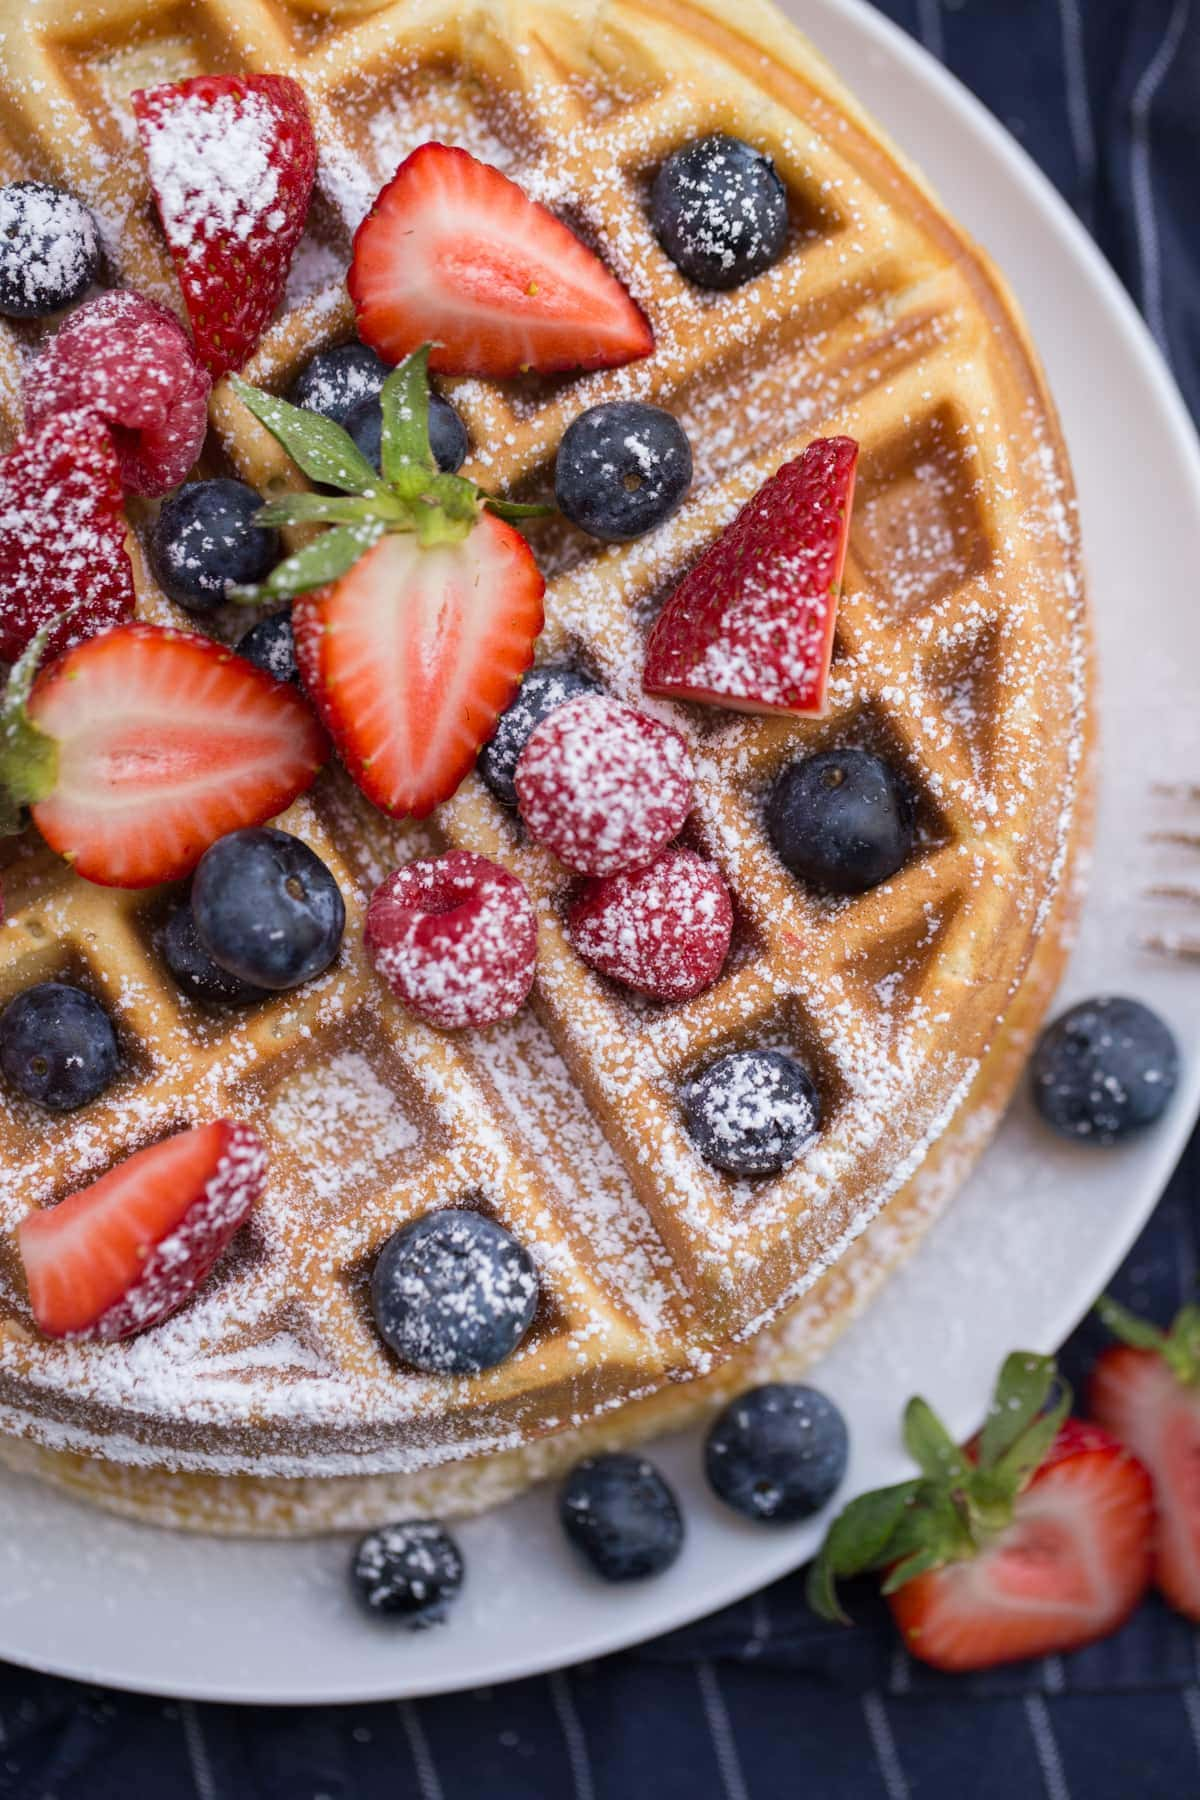 Belgian waffles with berries and powdered sugar